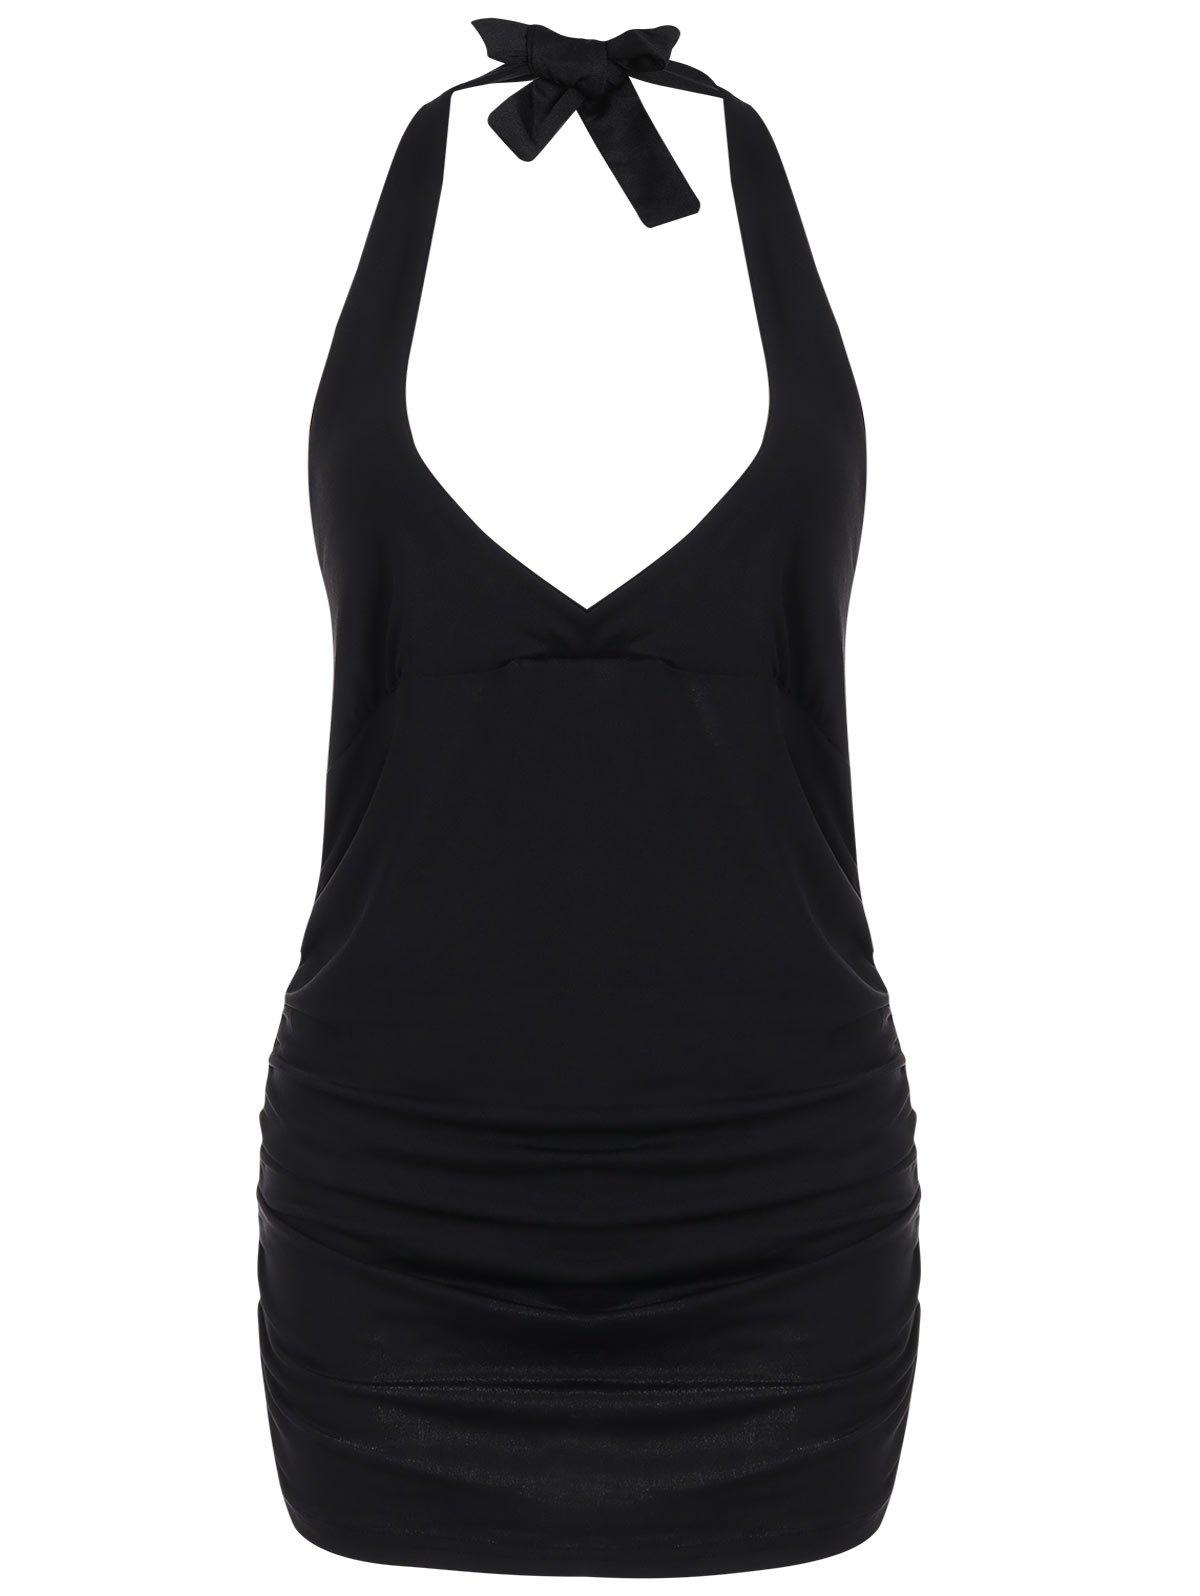 Halter Low Cut Backless Camisole - Noir S